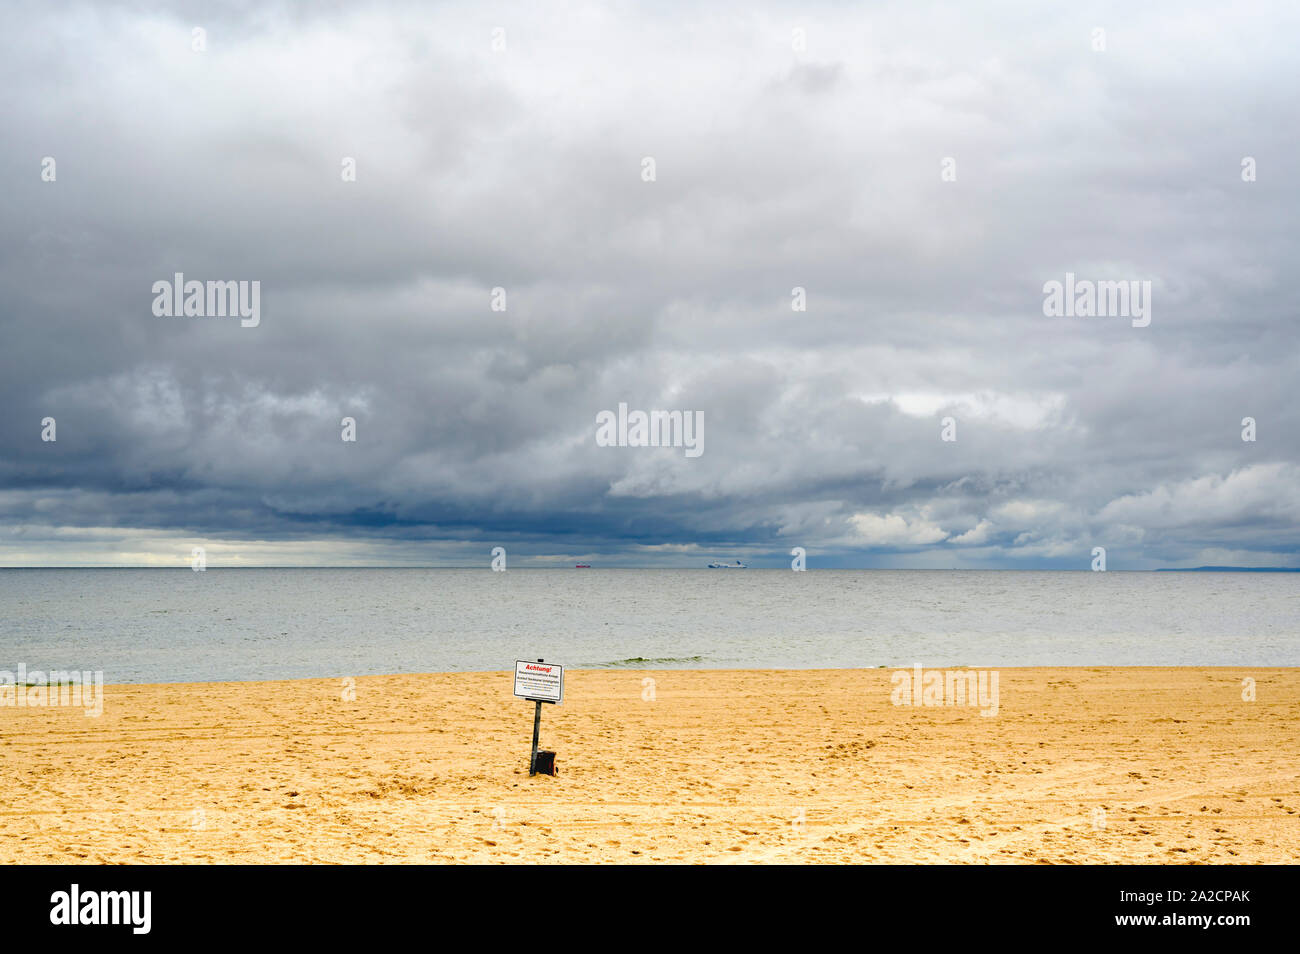 Bansin, Germany - September 13, 2019: Lonely beach on Usedom with view over the sea to dramatic looking storm clouds. Stock Photo